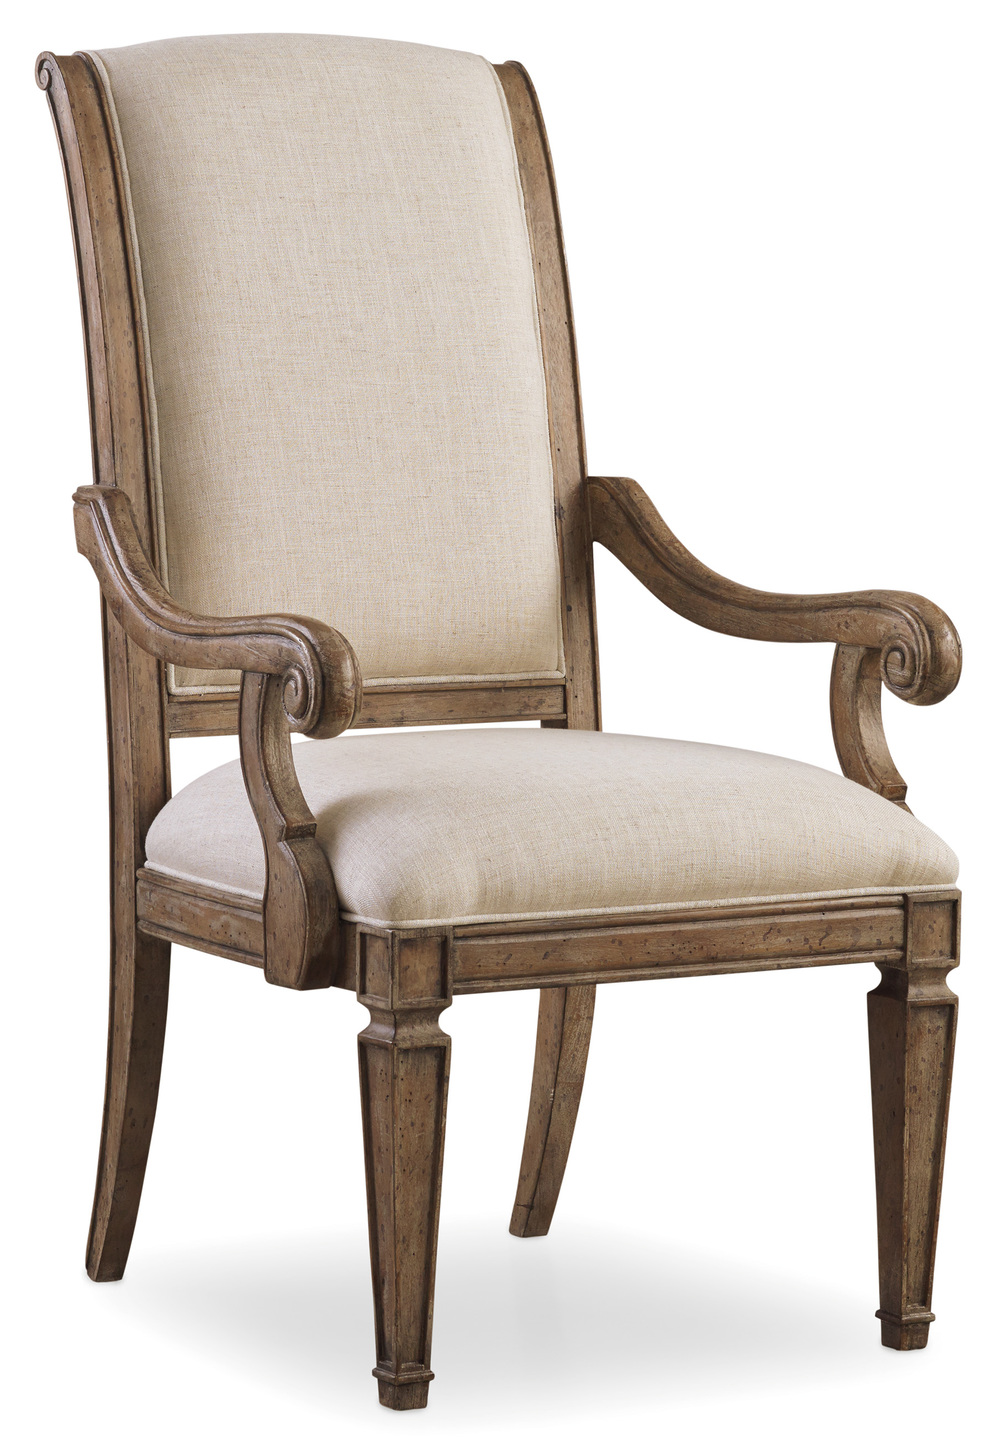 HOOKER FURNITURE CO - Solana Upholstered Arm Chair